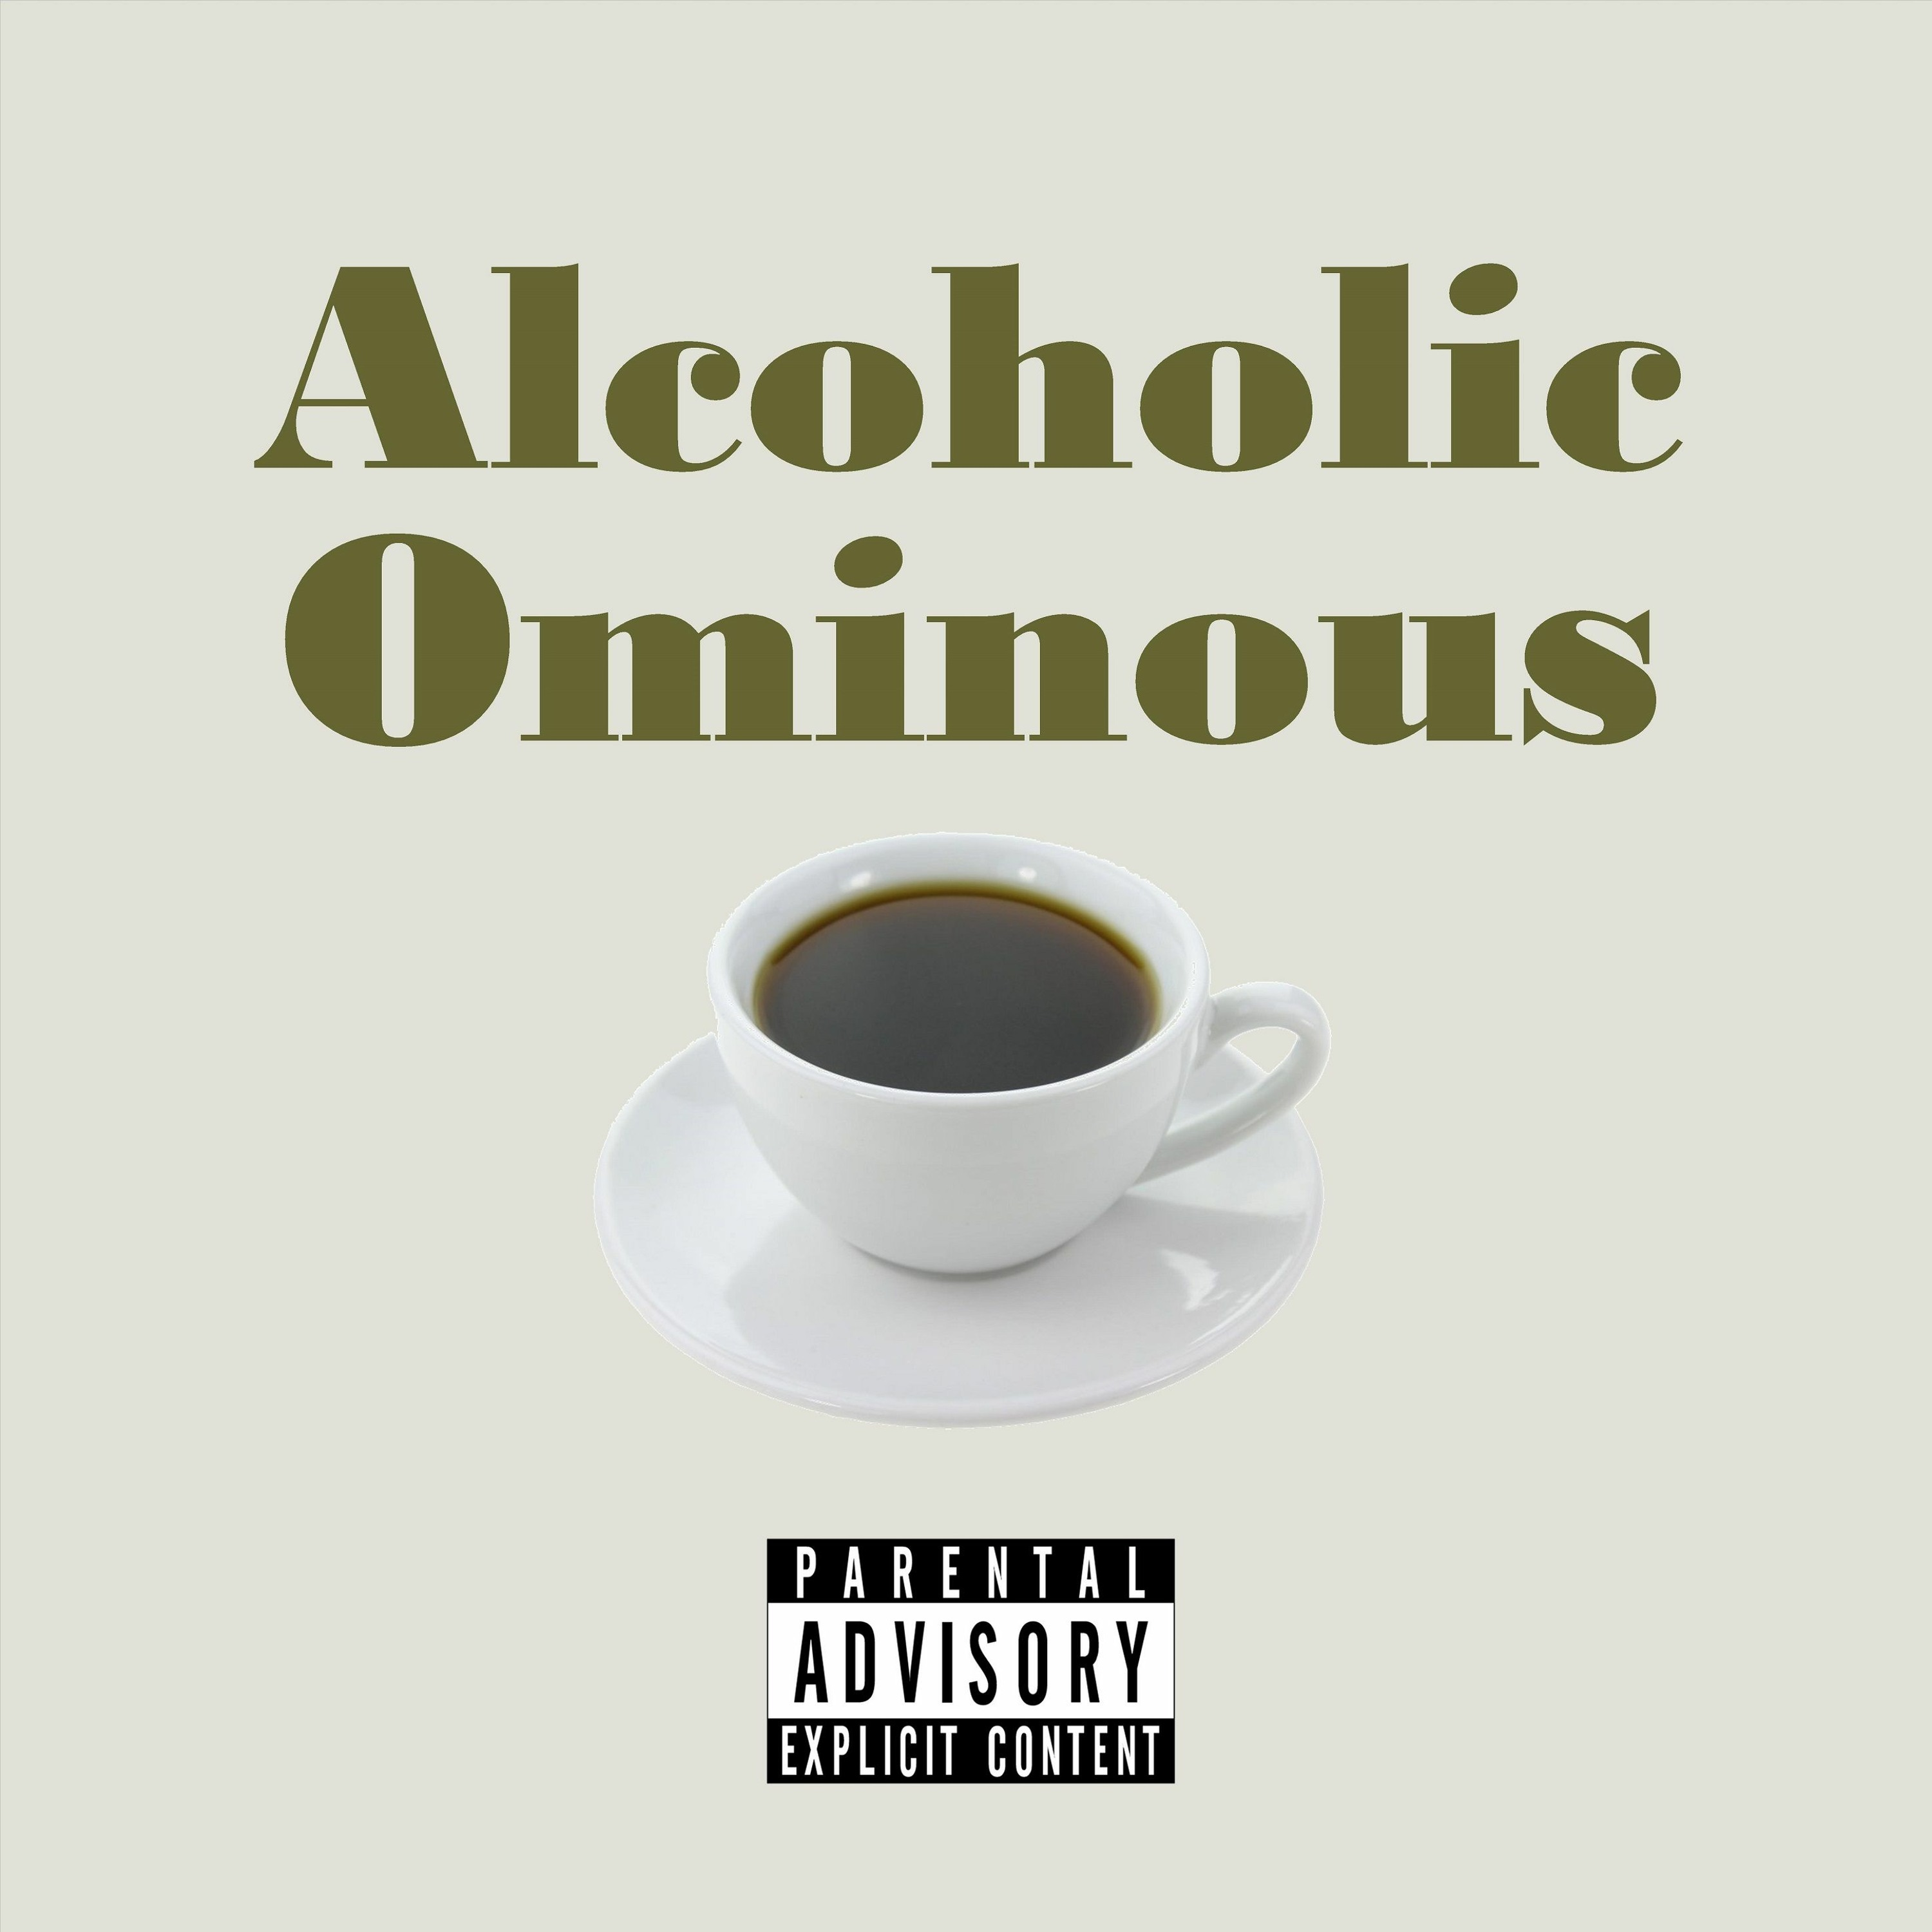 30: Other Alcoholics – What is the point in helping other alcoholics?